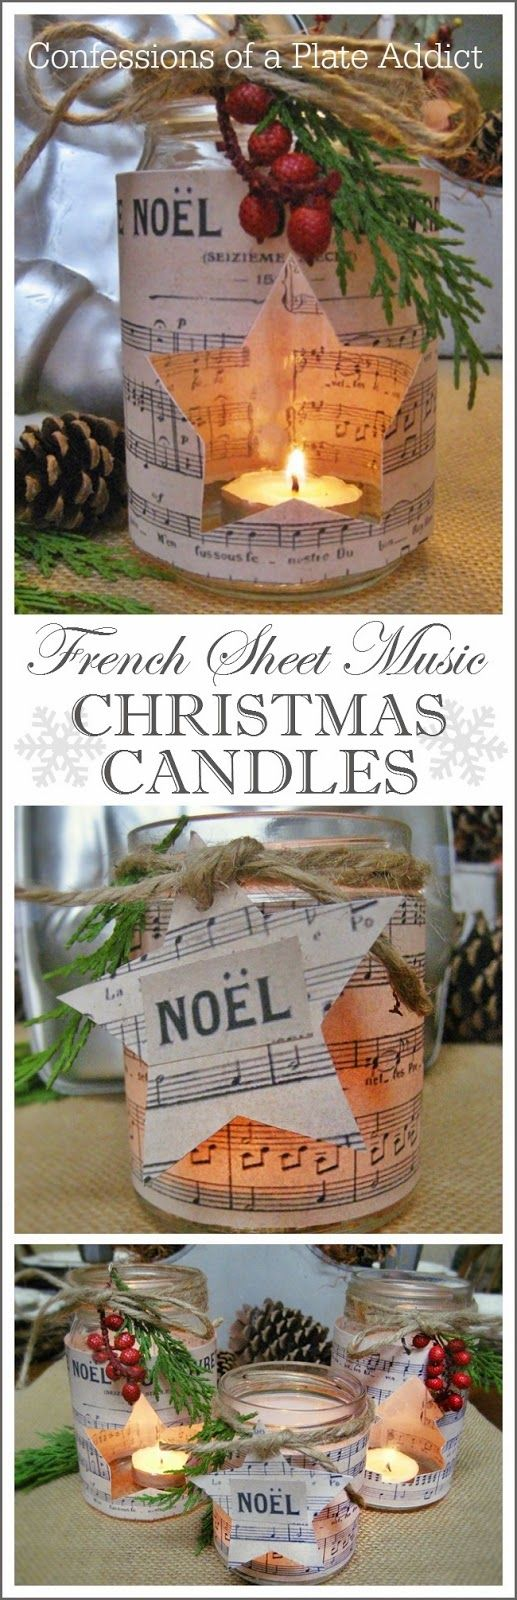 CONFESSIONS OF A PLATE ADDICT: French Sheet Music Christmas Candles